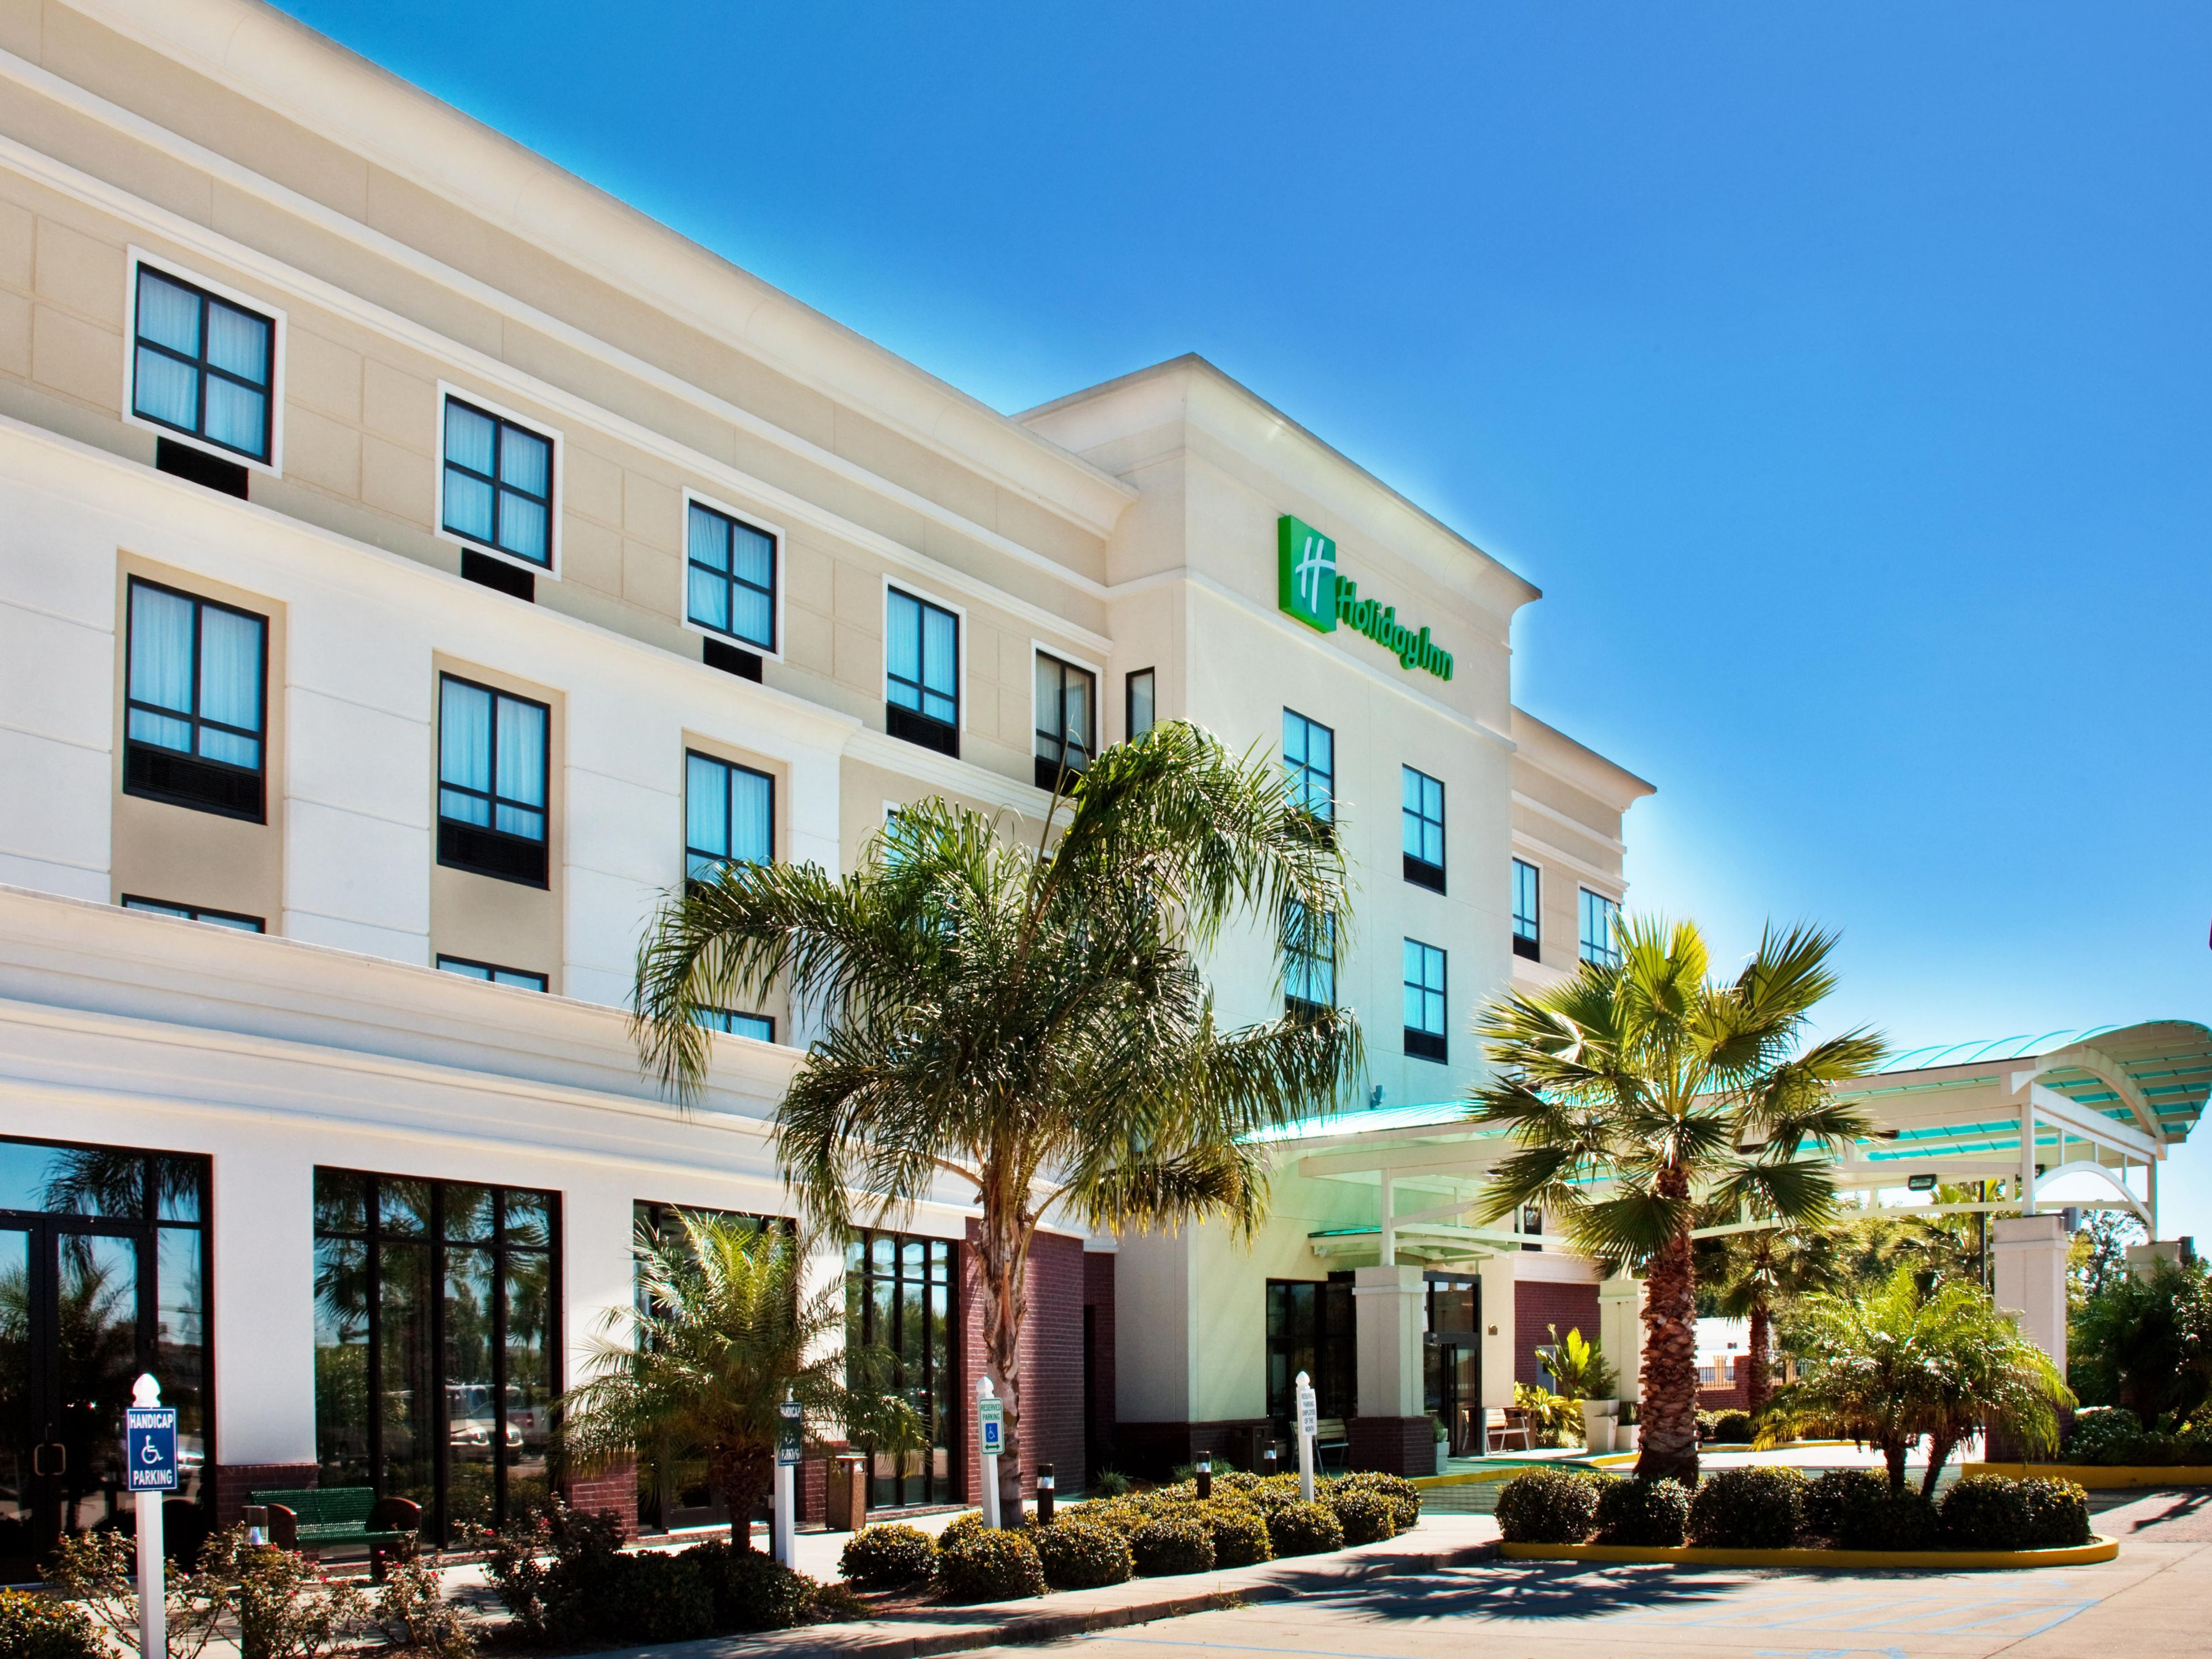 Hotel is conveniently located in Houma Louisiana